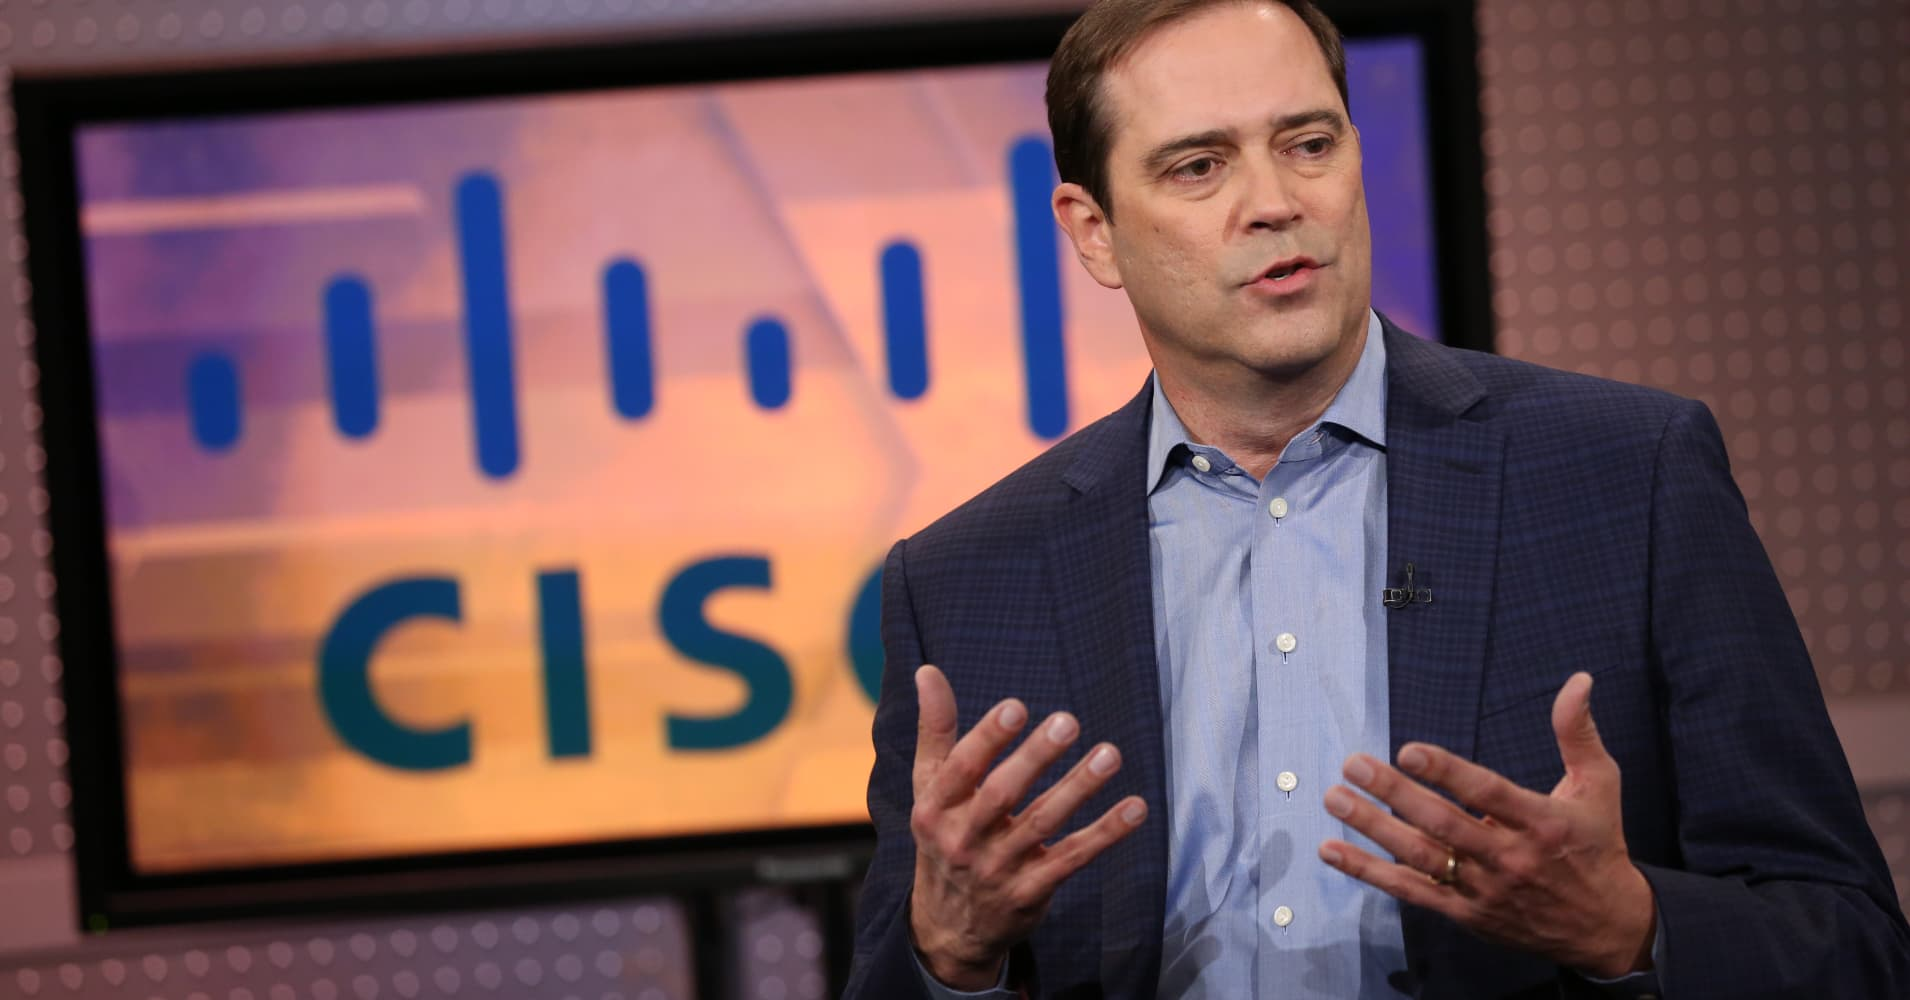 Despite rocky near-term outlook Cisco isn't changing its strategy, CEO Robbins said